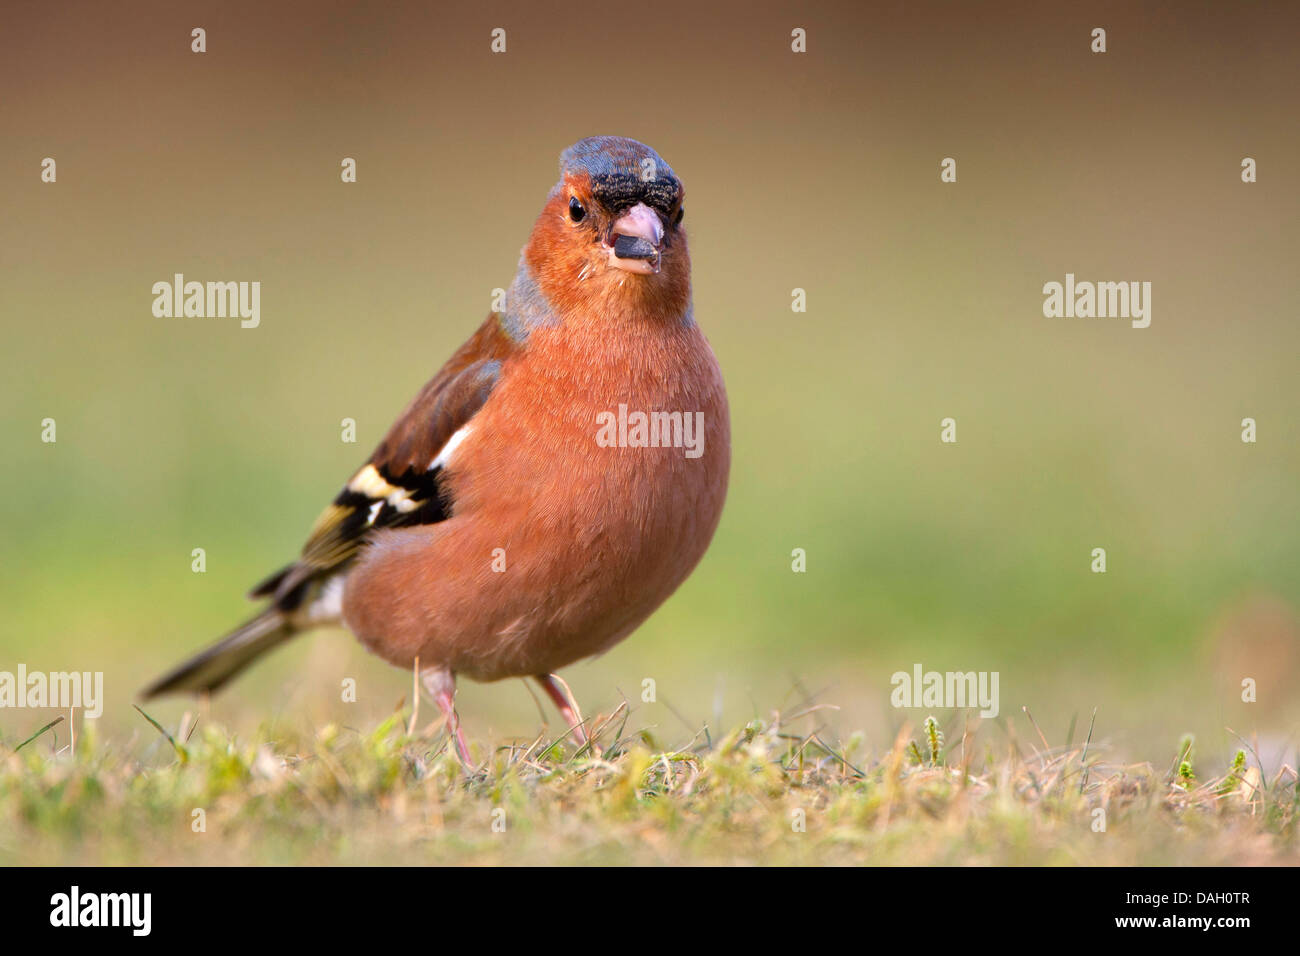 chaffinch (Fringilla coelebs), on the ground with kernel in the beak, Belgium - Stock Image